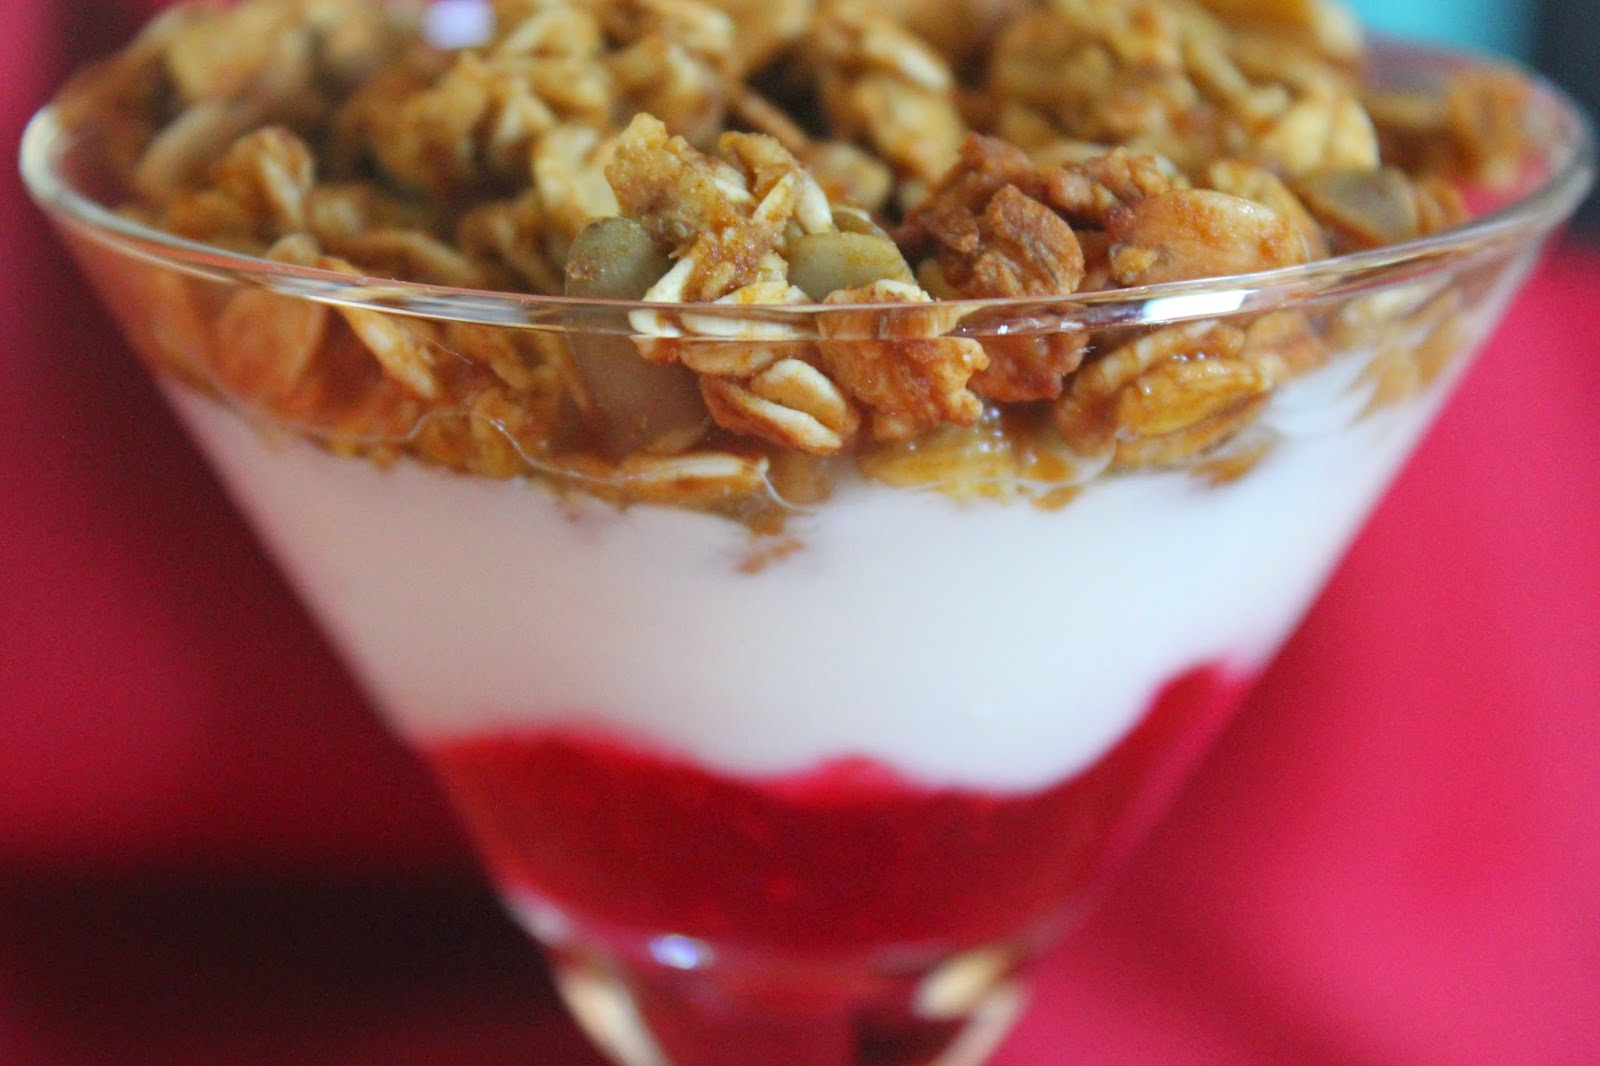 Pumpkin-cranberry yogurt parfaits